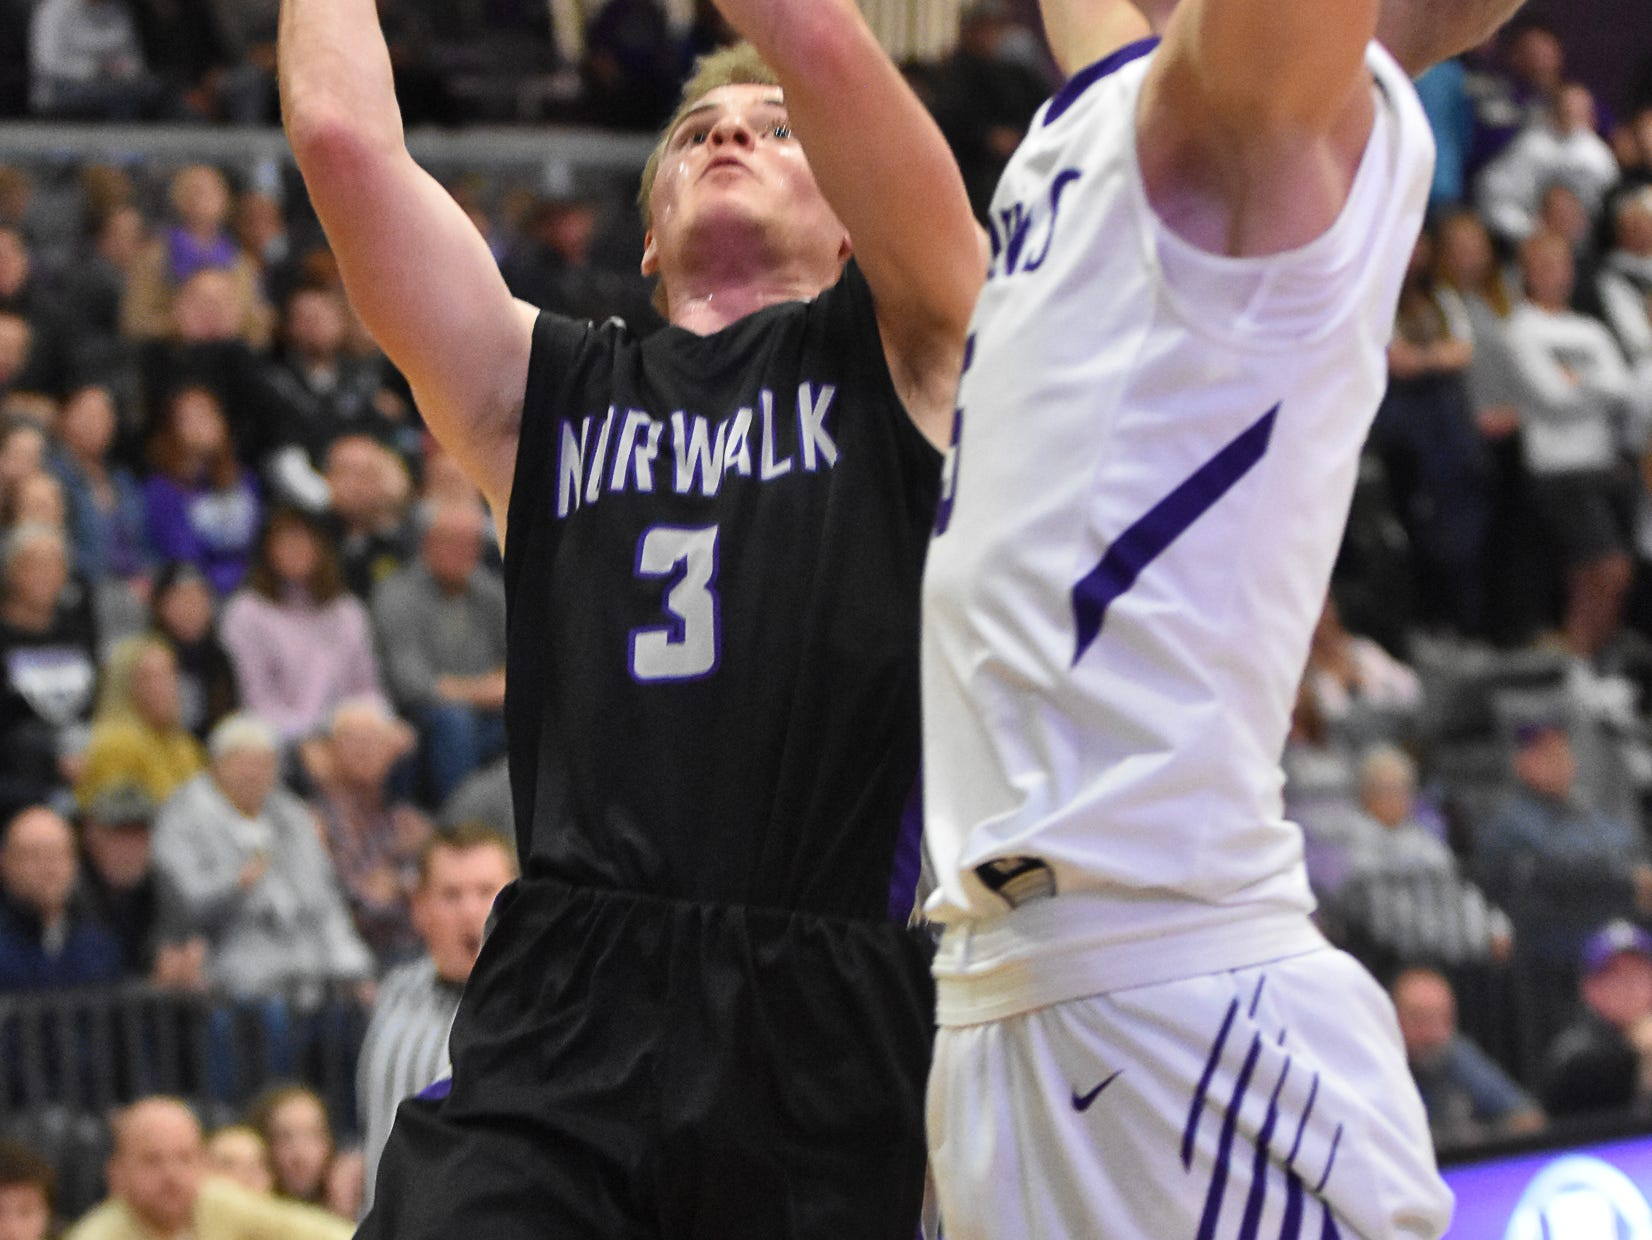 Norwalk's Scott Anderson shoots as an Indianola team member tries to block him. The Indianola boys slipped to 1-1 on the season with a 65-48 home loss to Norwalk on Nov. 30, 2018.